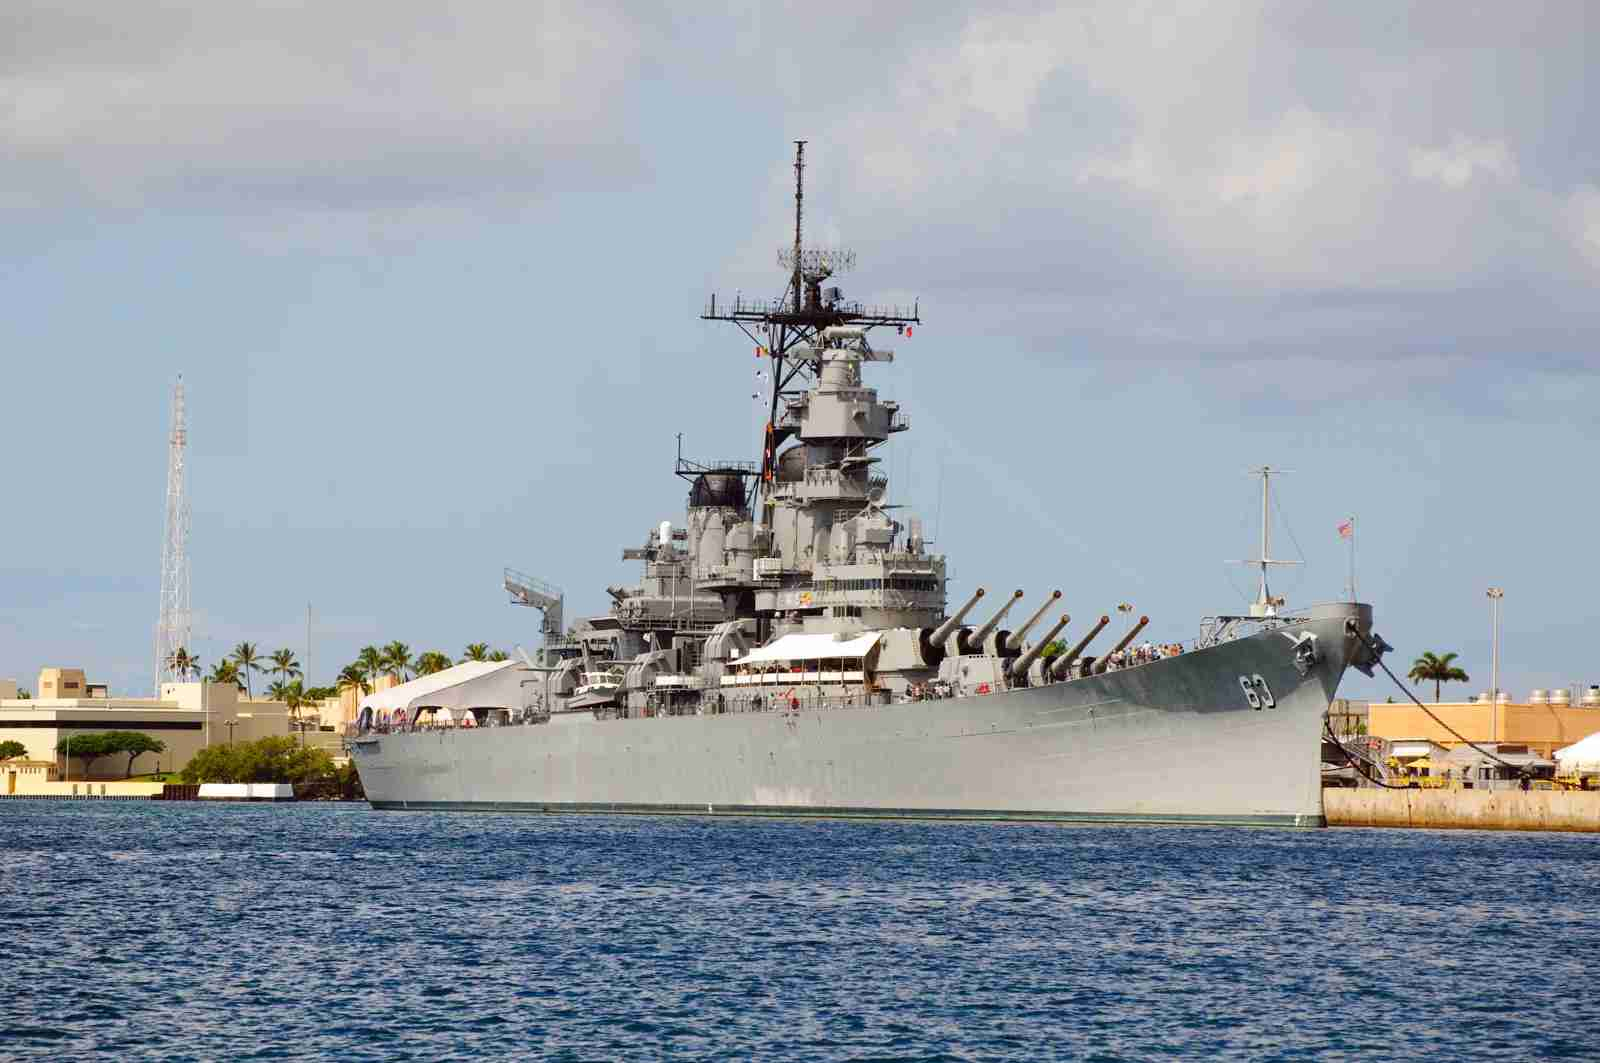 Battleship USS Missouri in Pearl Harbor, Hawaii. (Photo by Joel Carillet / Getty Images)